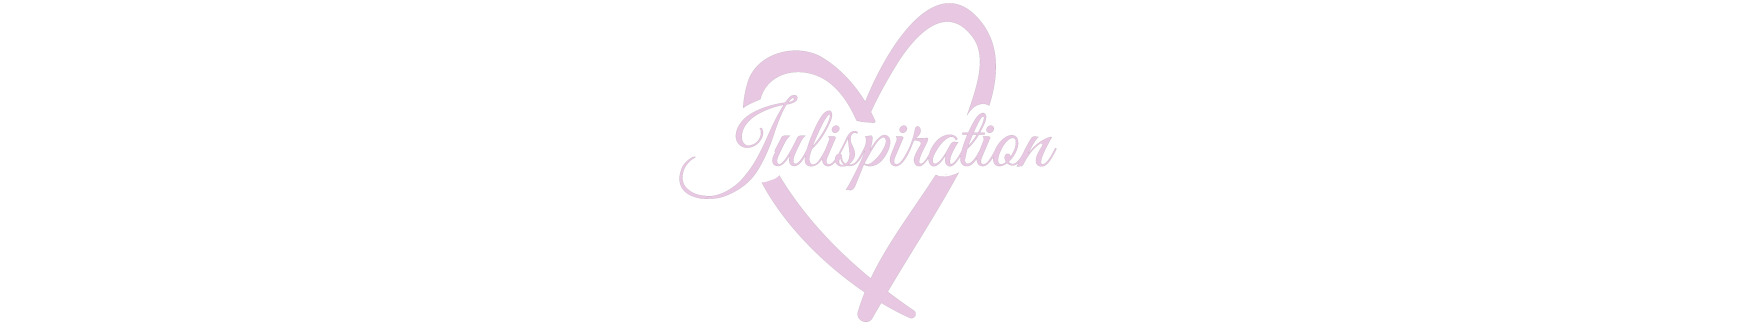 Julispiration